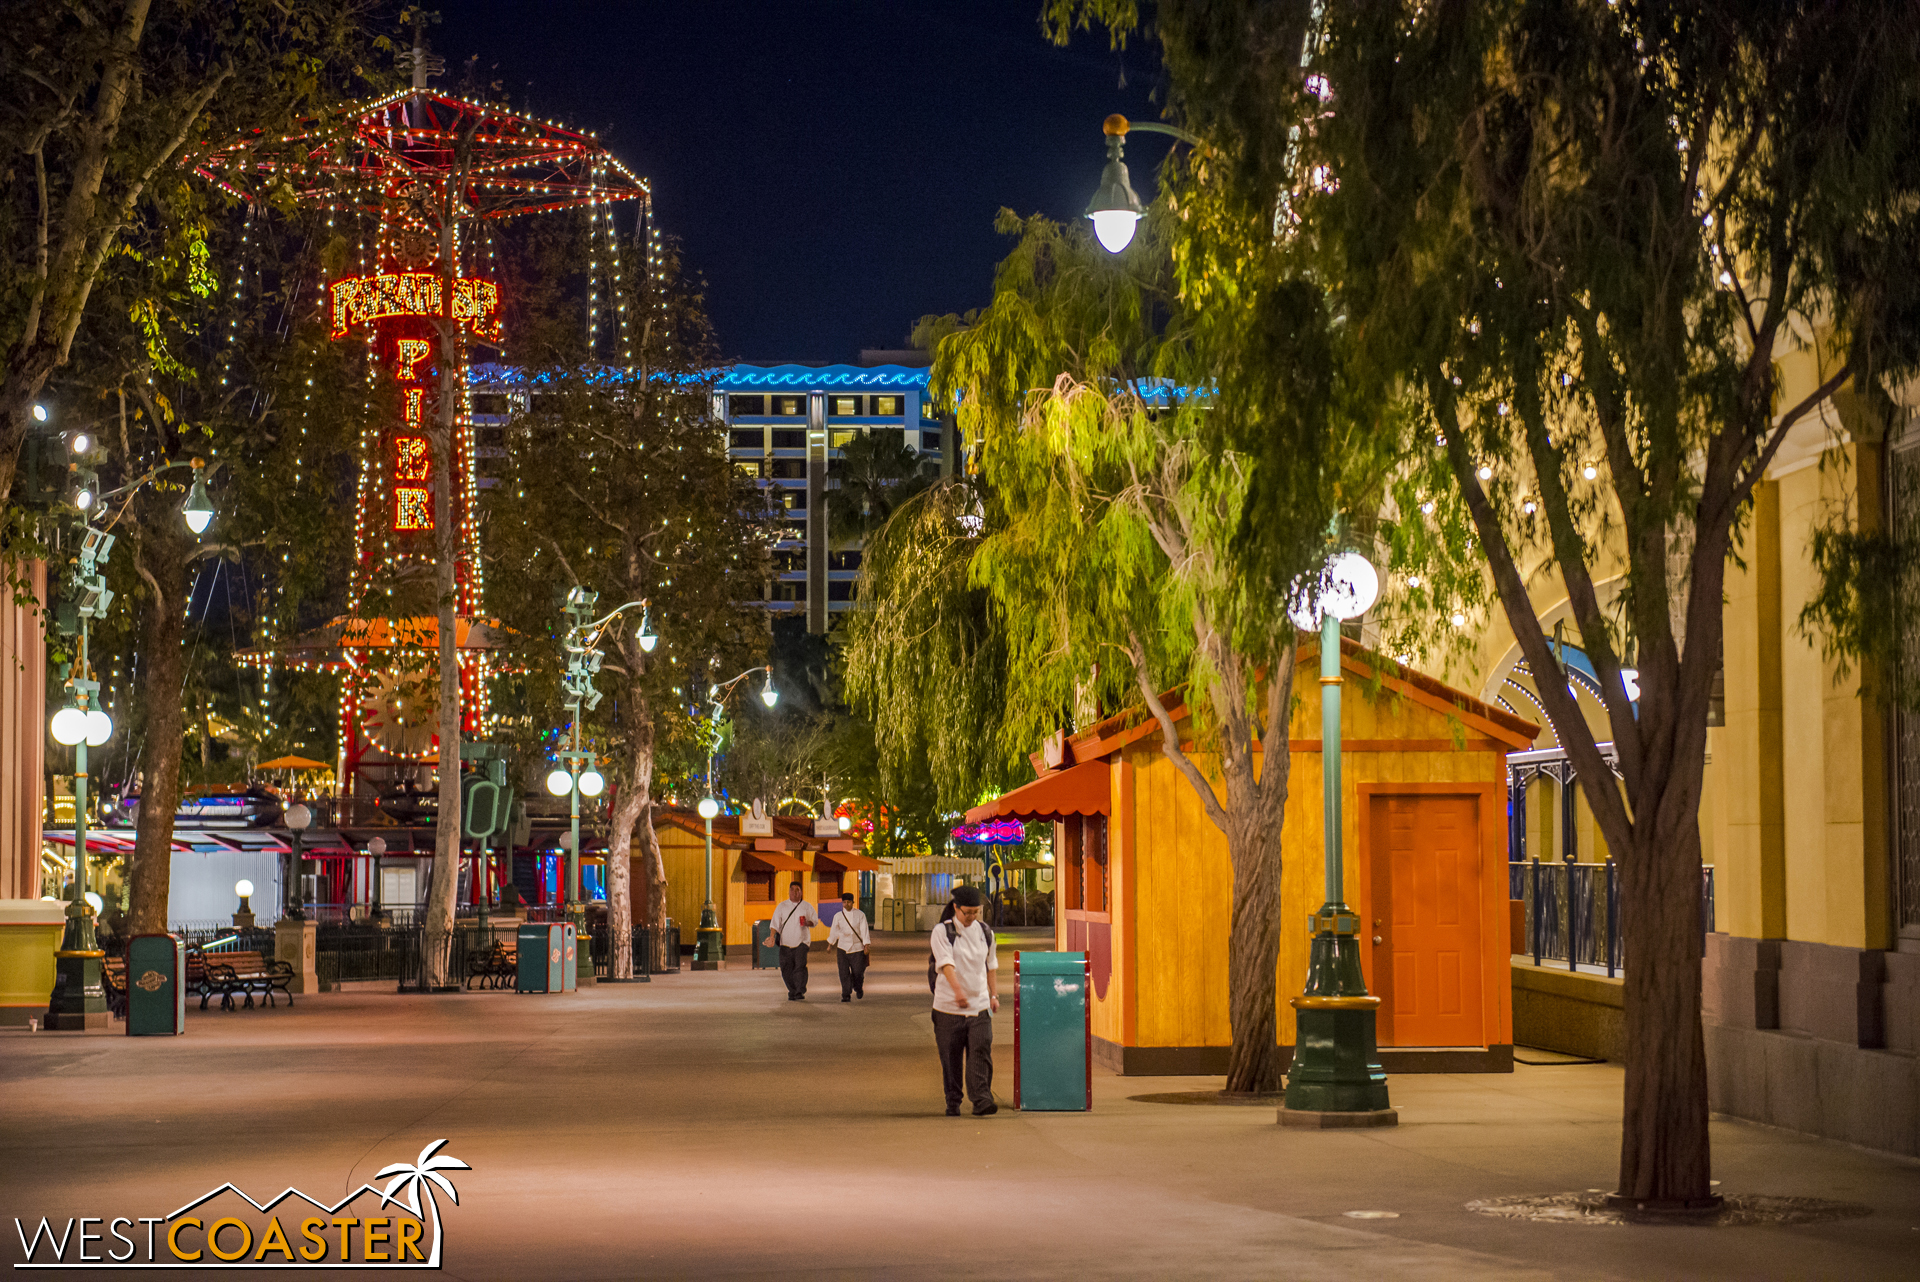 Speaking of food, next Friday marks the return of the Food and Wine Festival to Disney California Adventure.